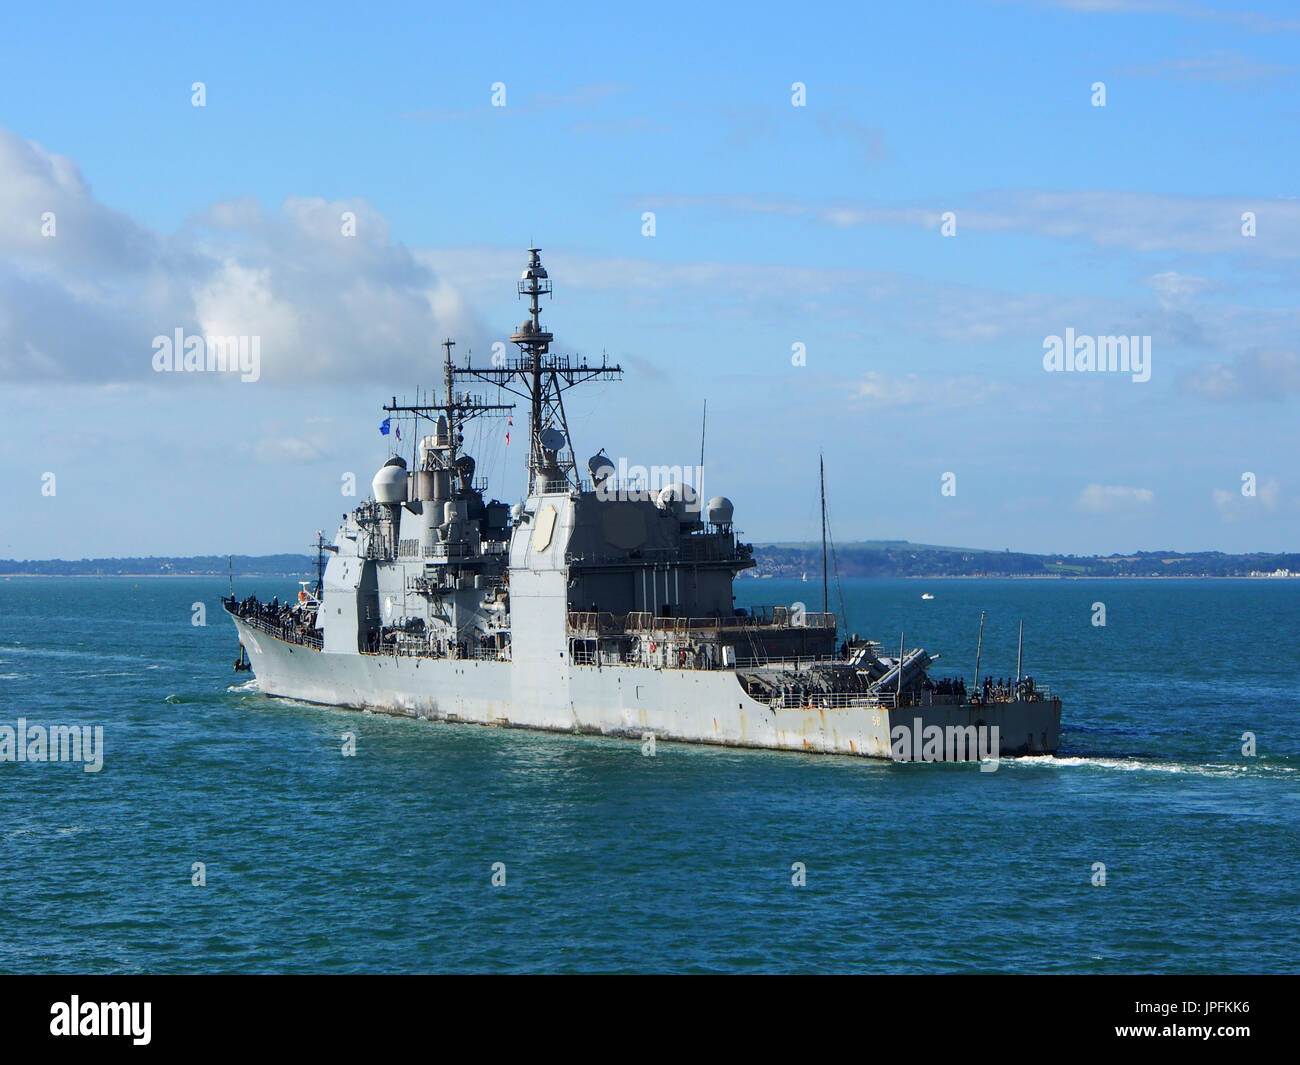 Portsmouth, Hampshire, UK. 01st Aug, 2017. The USS Philippine Sea, CG-58, a Flight II Ticonderoga-class guided missile cruiser, leaves Portsmouth Harbour after a week long visit along with other ships involved in Operation Inherent Resolve, the Global Coalition's fight against ISIS. Credit: simon evans/Alamy Live News - Stock Image